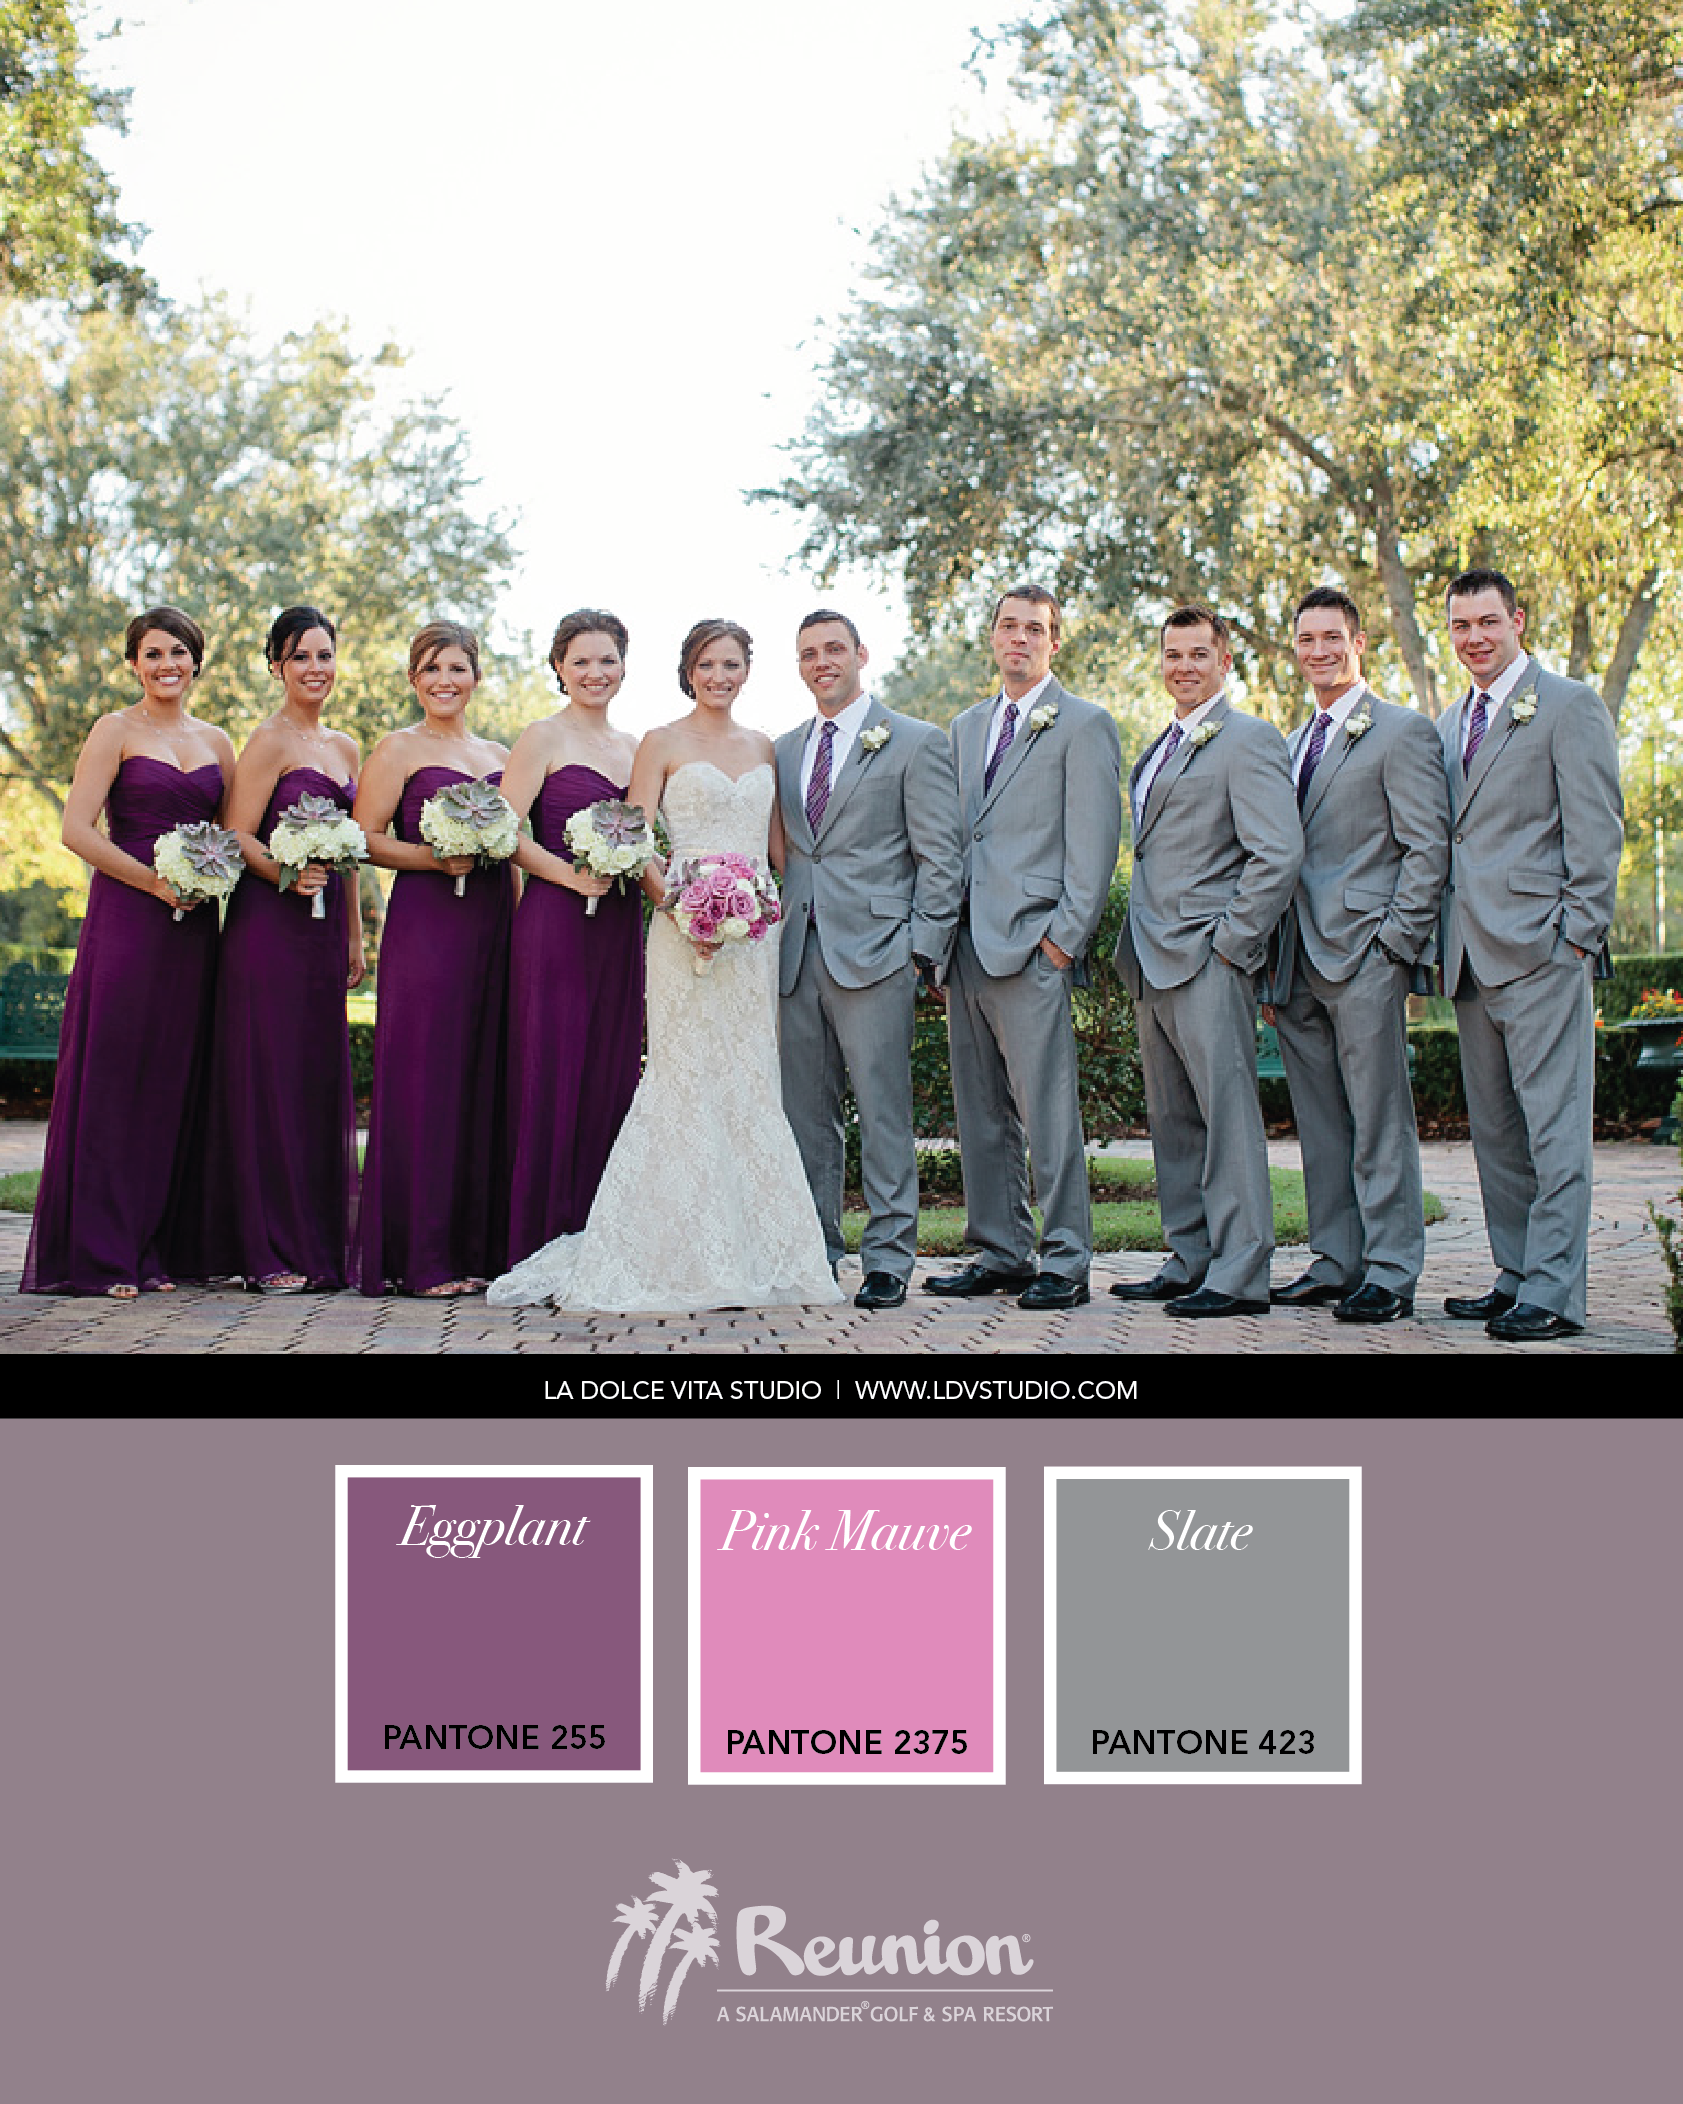 wedding color palette purple pink amp gray wedding